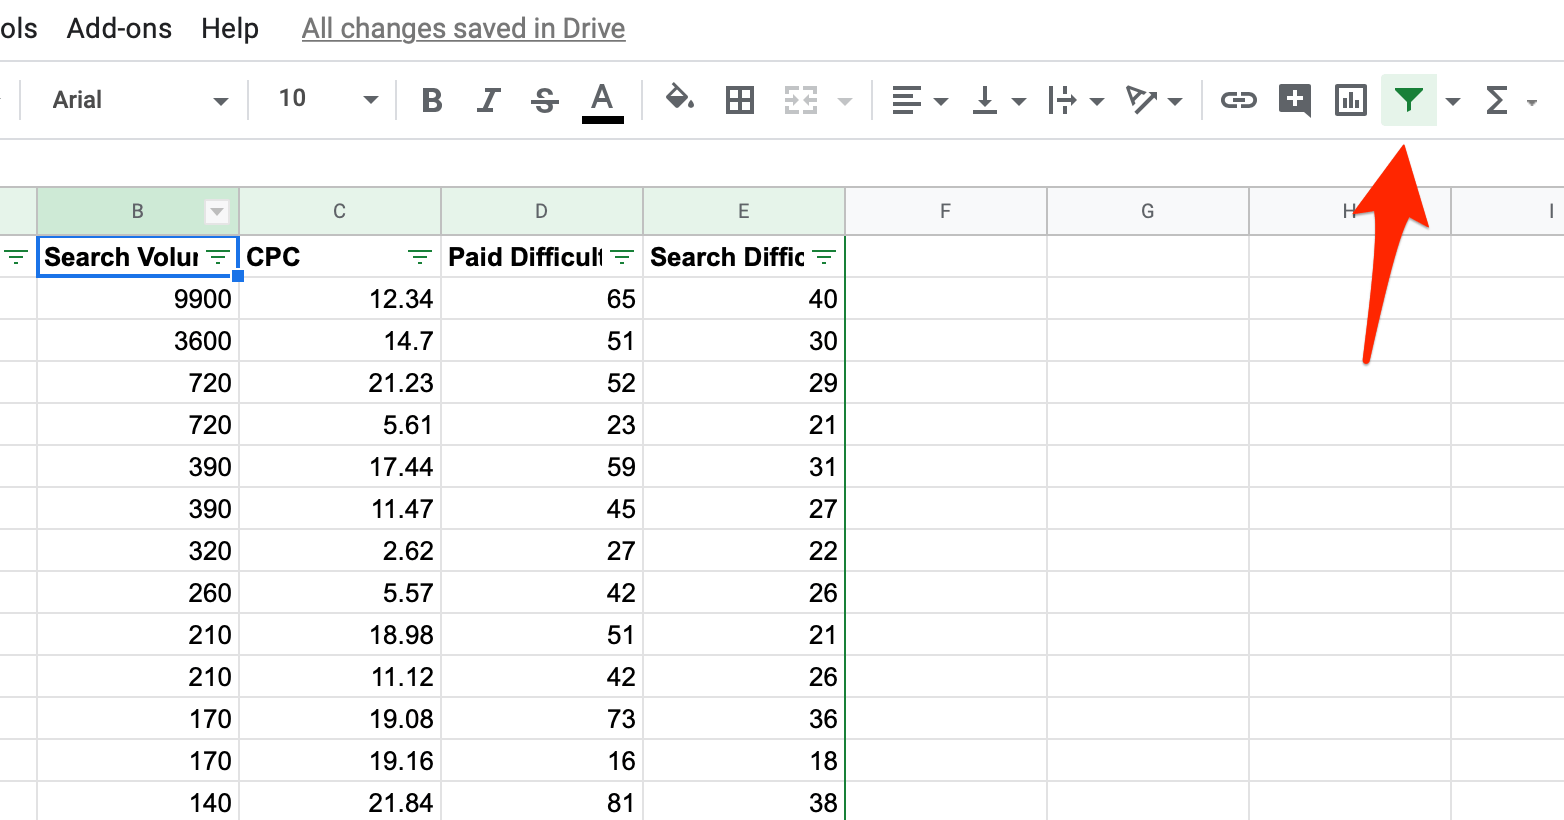 Creating filters for keyword data in Google Sheets